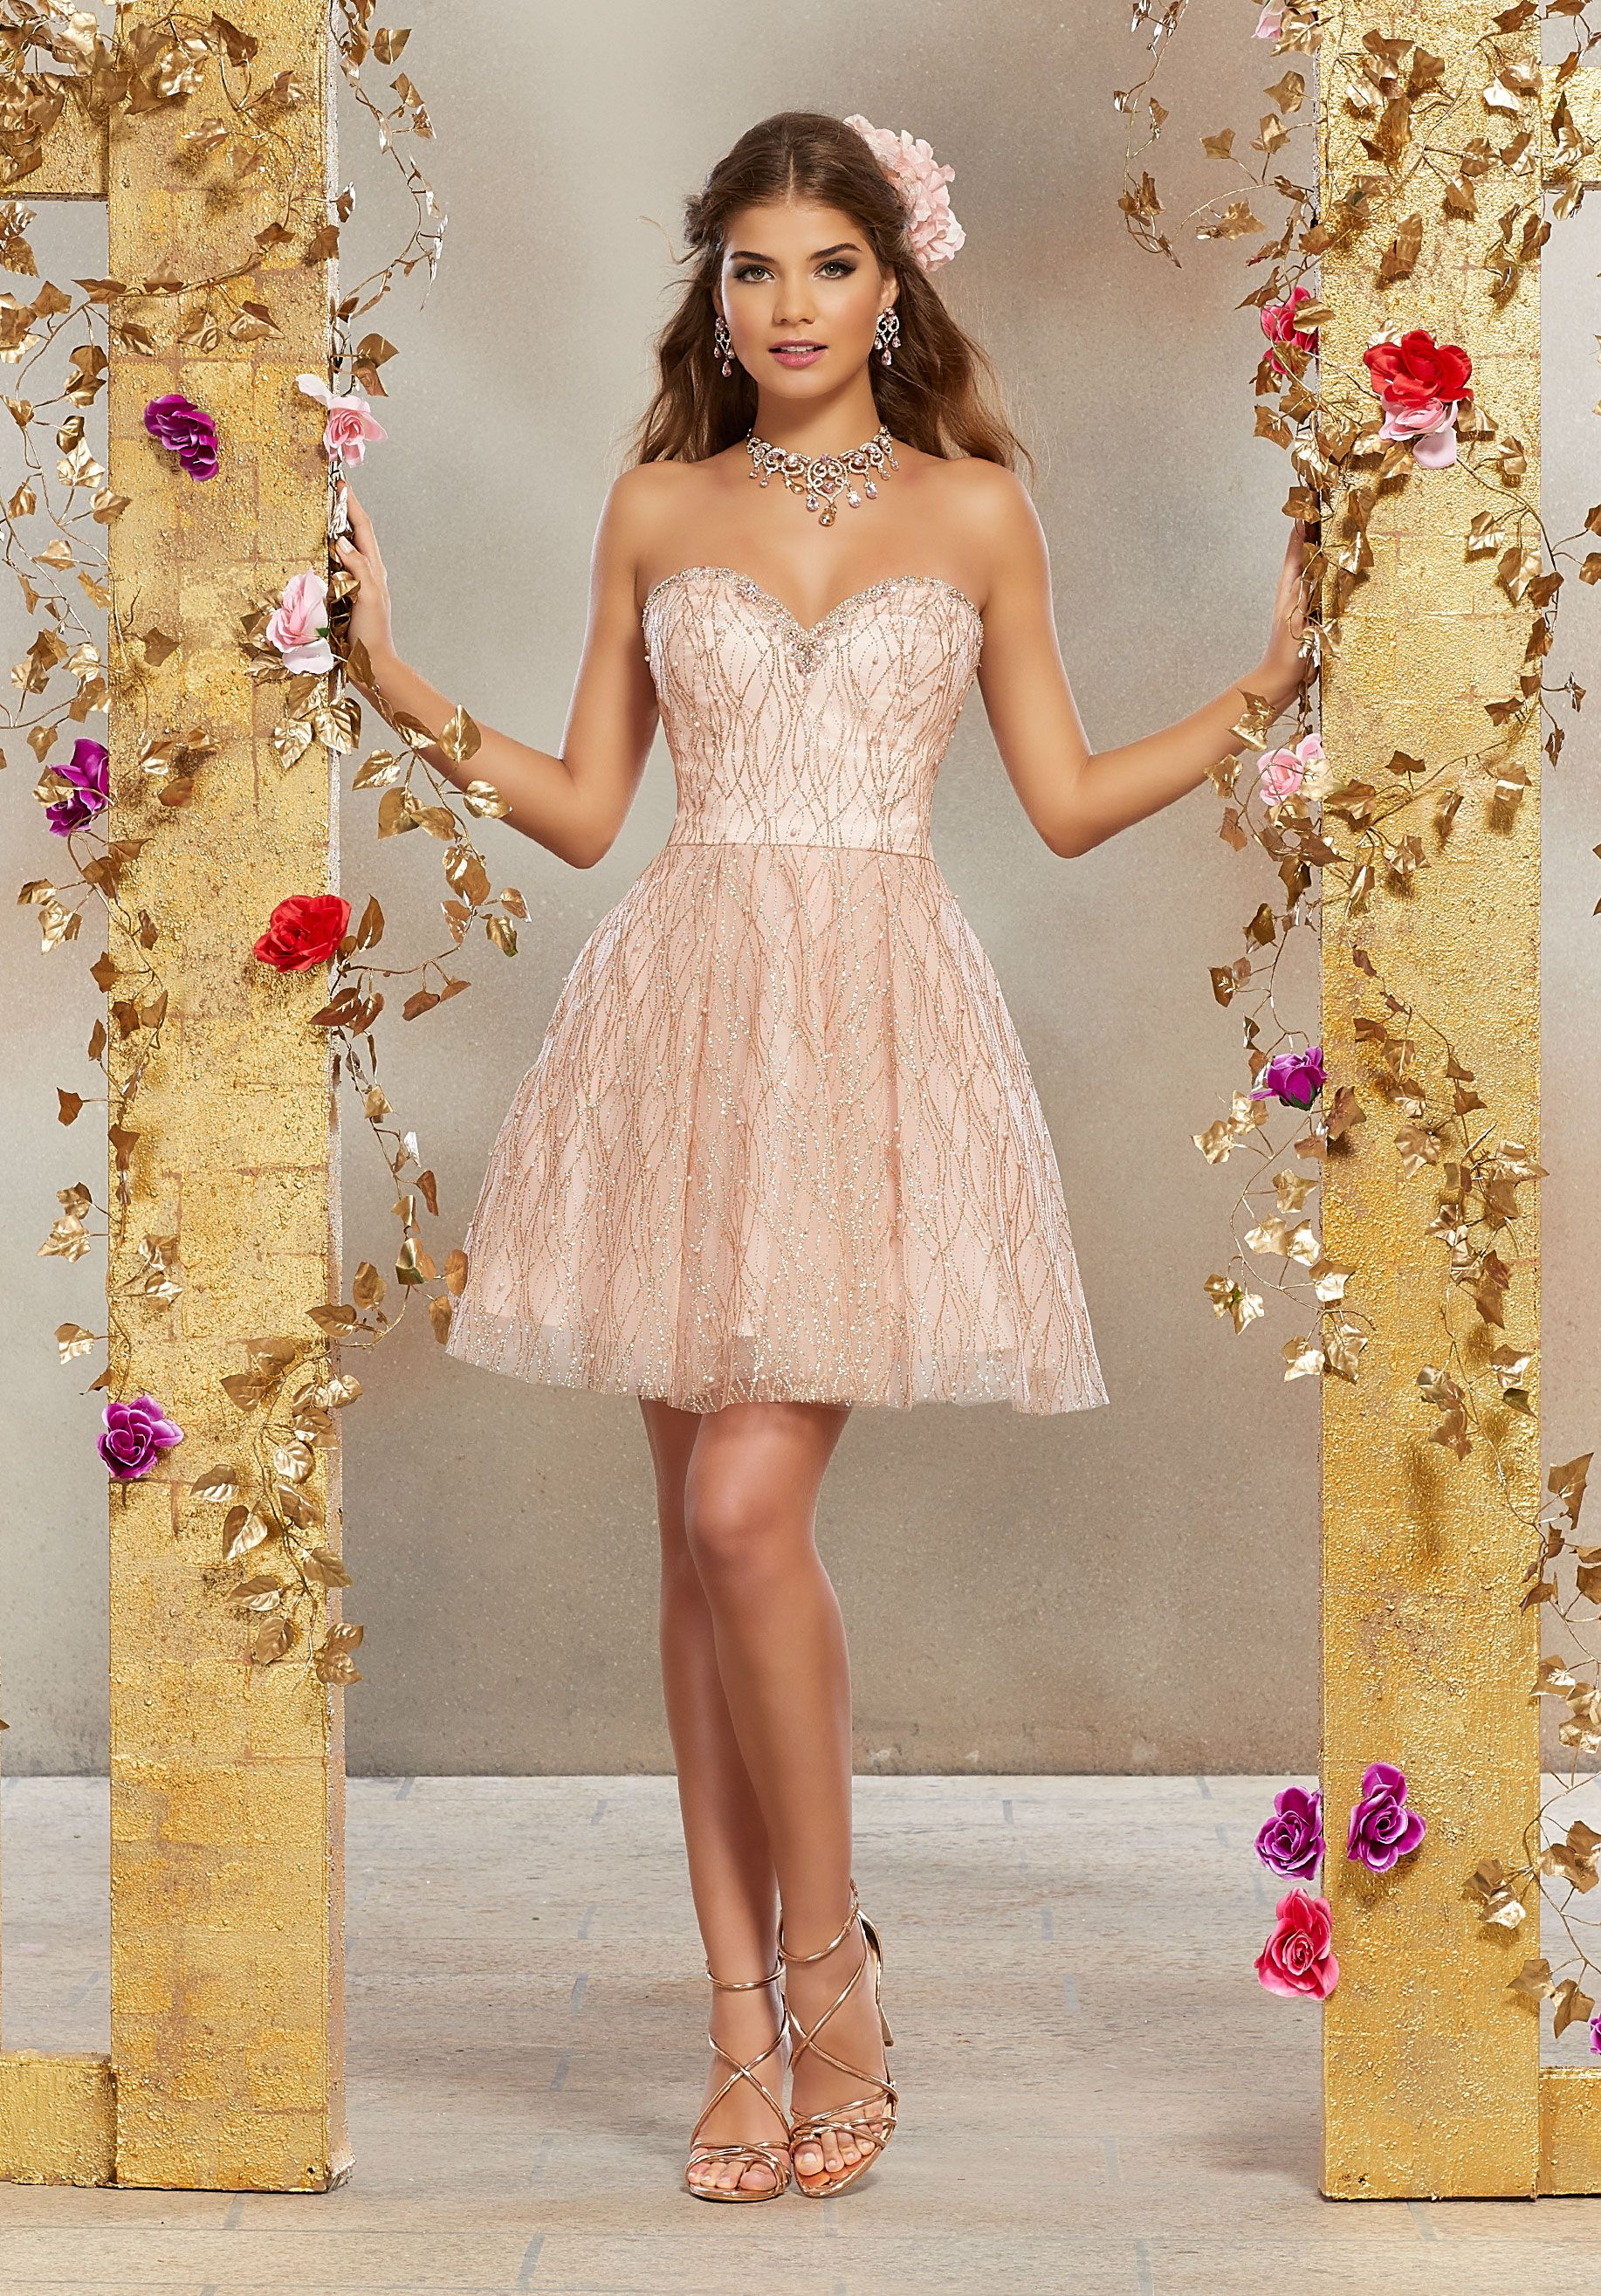 Patterned Glitter Mesh Party Dress with Rhinestone